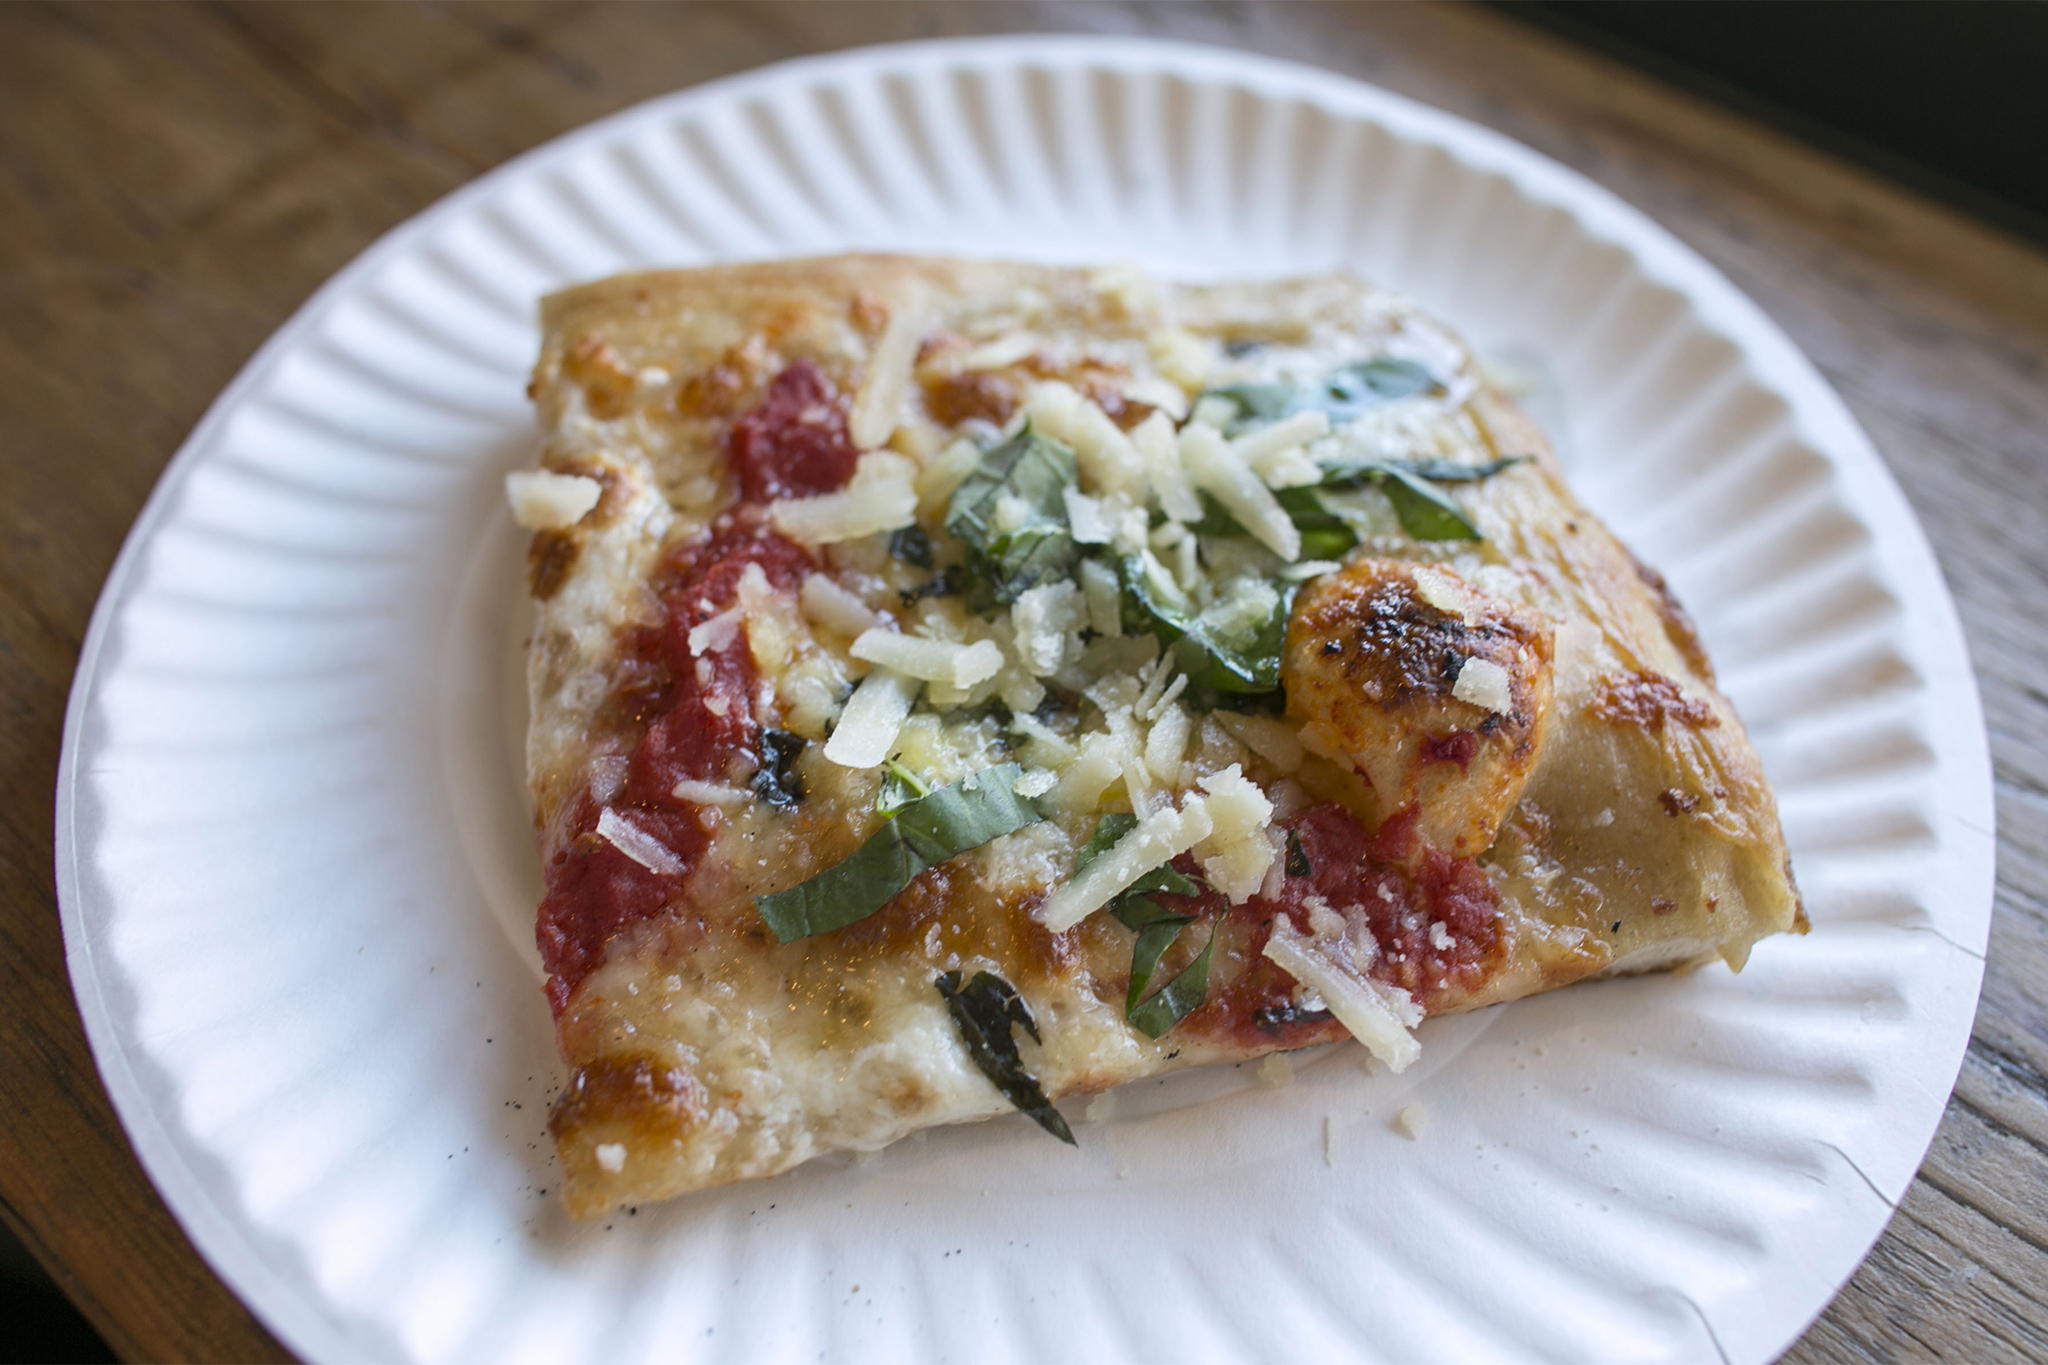 The new-school slice slinger: Williamsburg Pizza